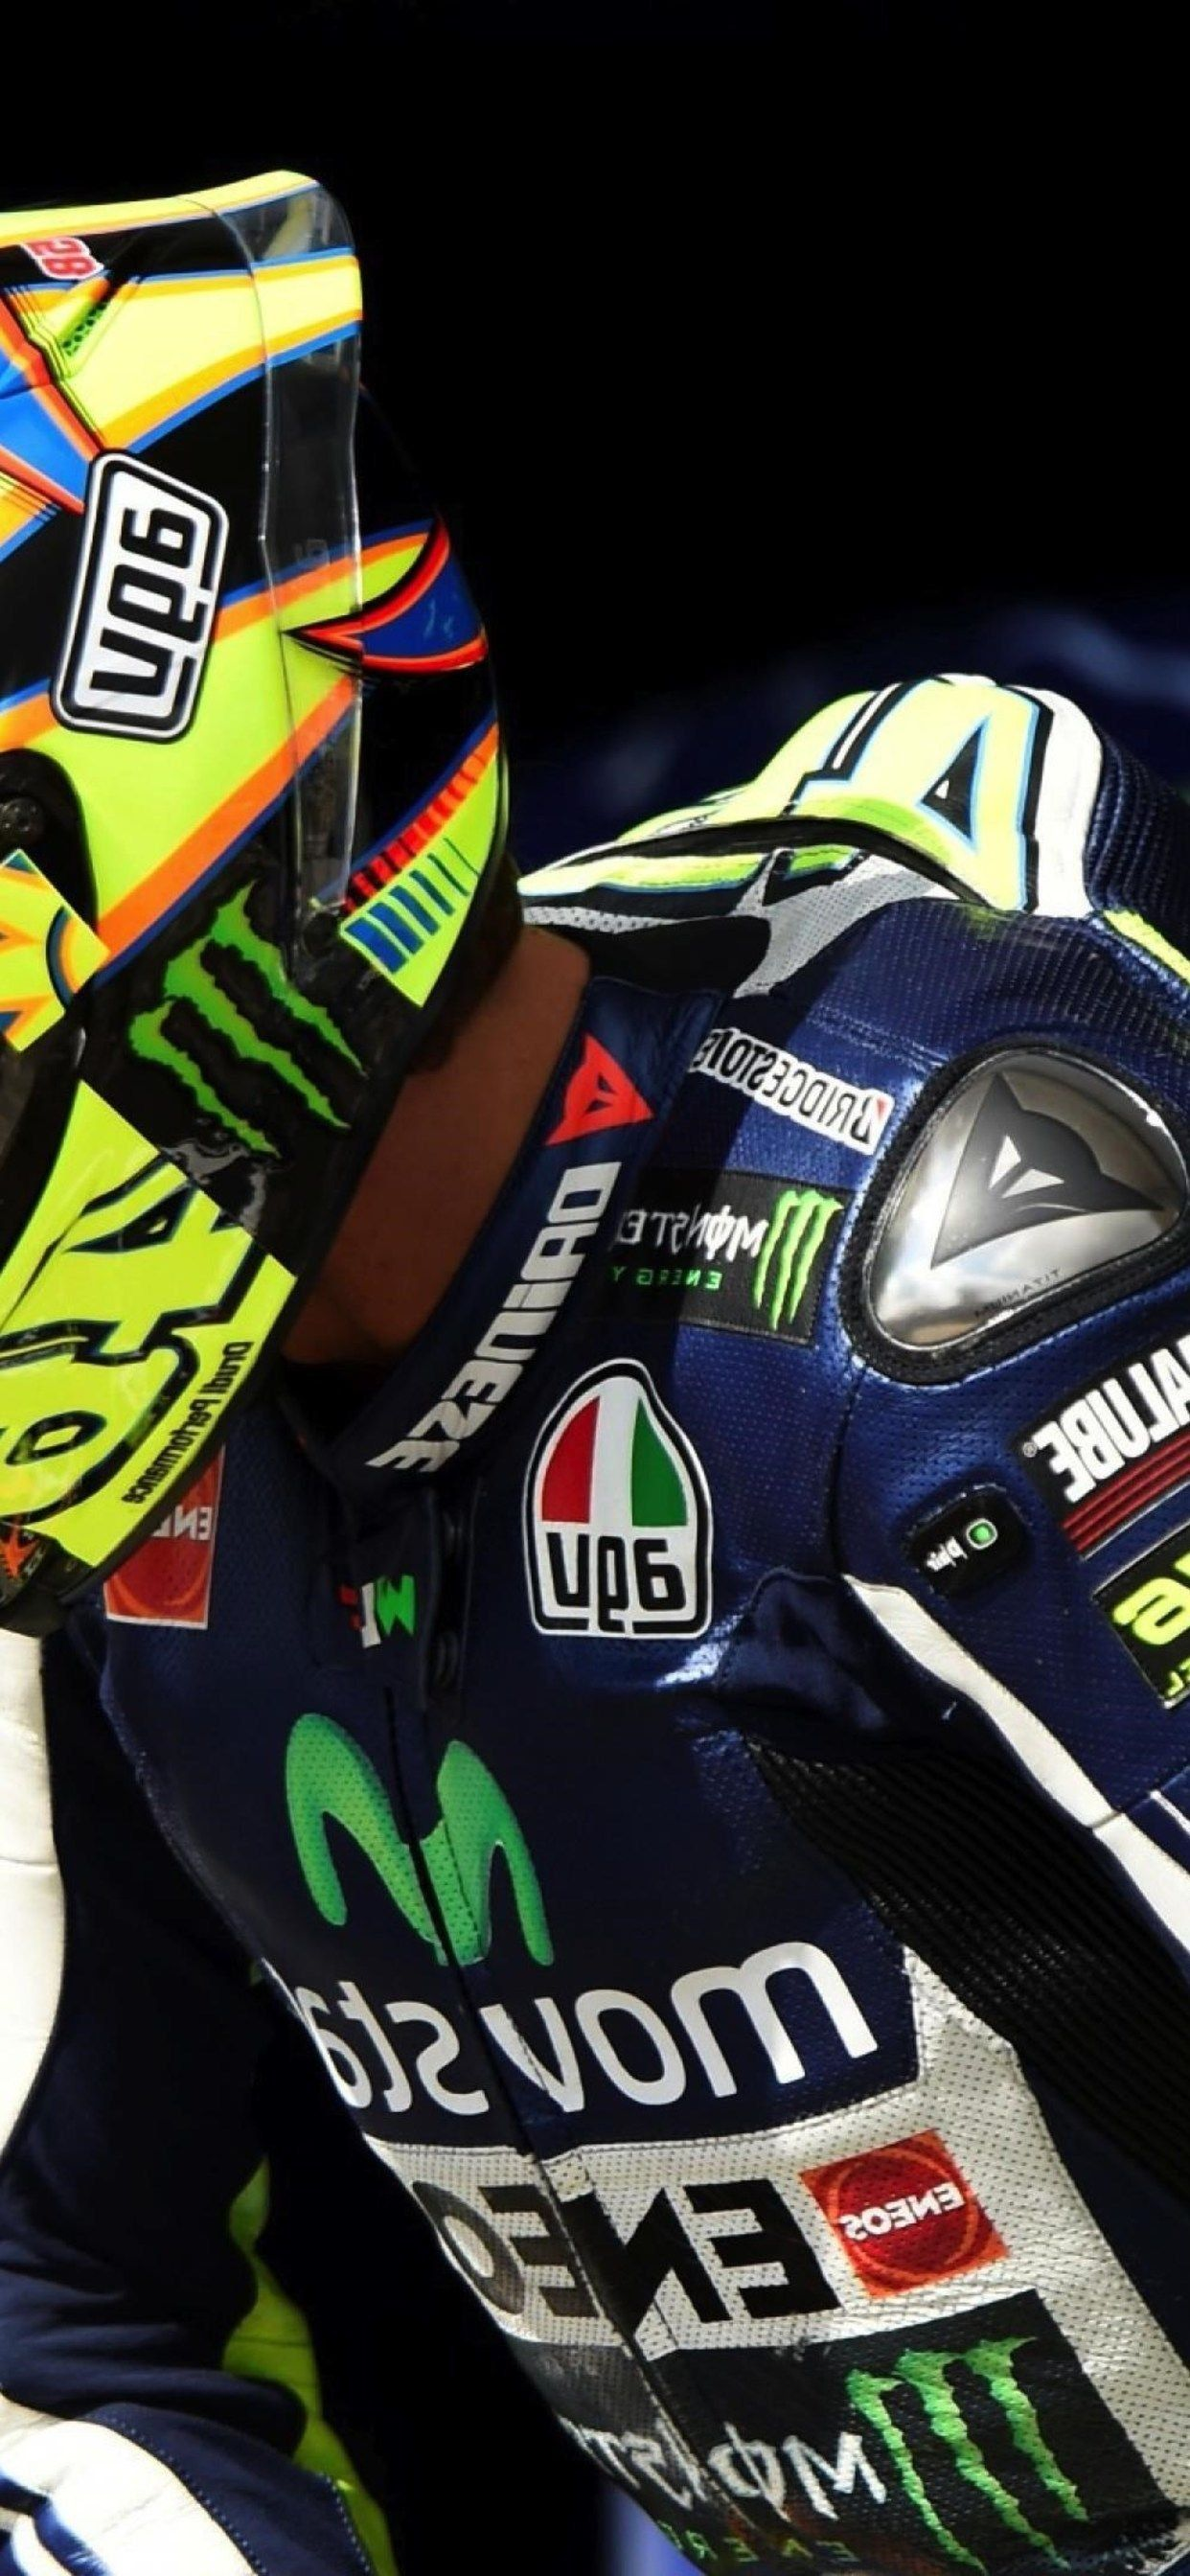 Valentino Rossi Hd Iphone 11 Pro Max Wallpapers Wallpaper Cave